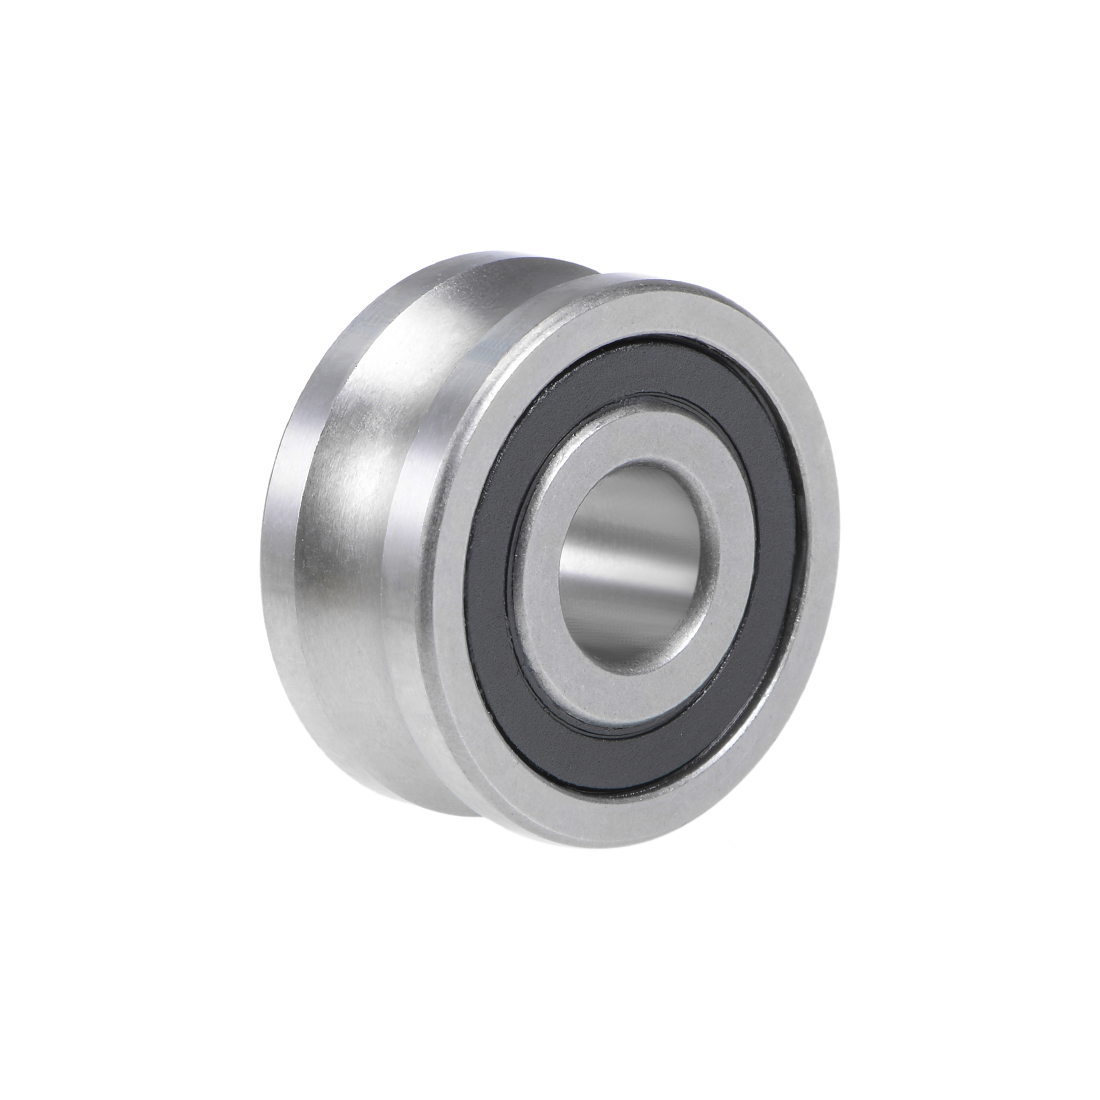 LFR5201-10 U-Groove Ball Bearing 12x35x15.9 Guide Pulley Bearings for 10mm Shaft